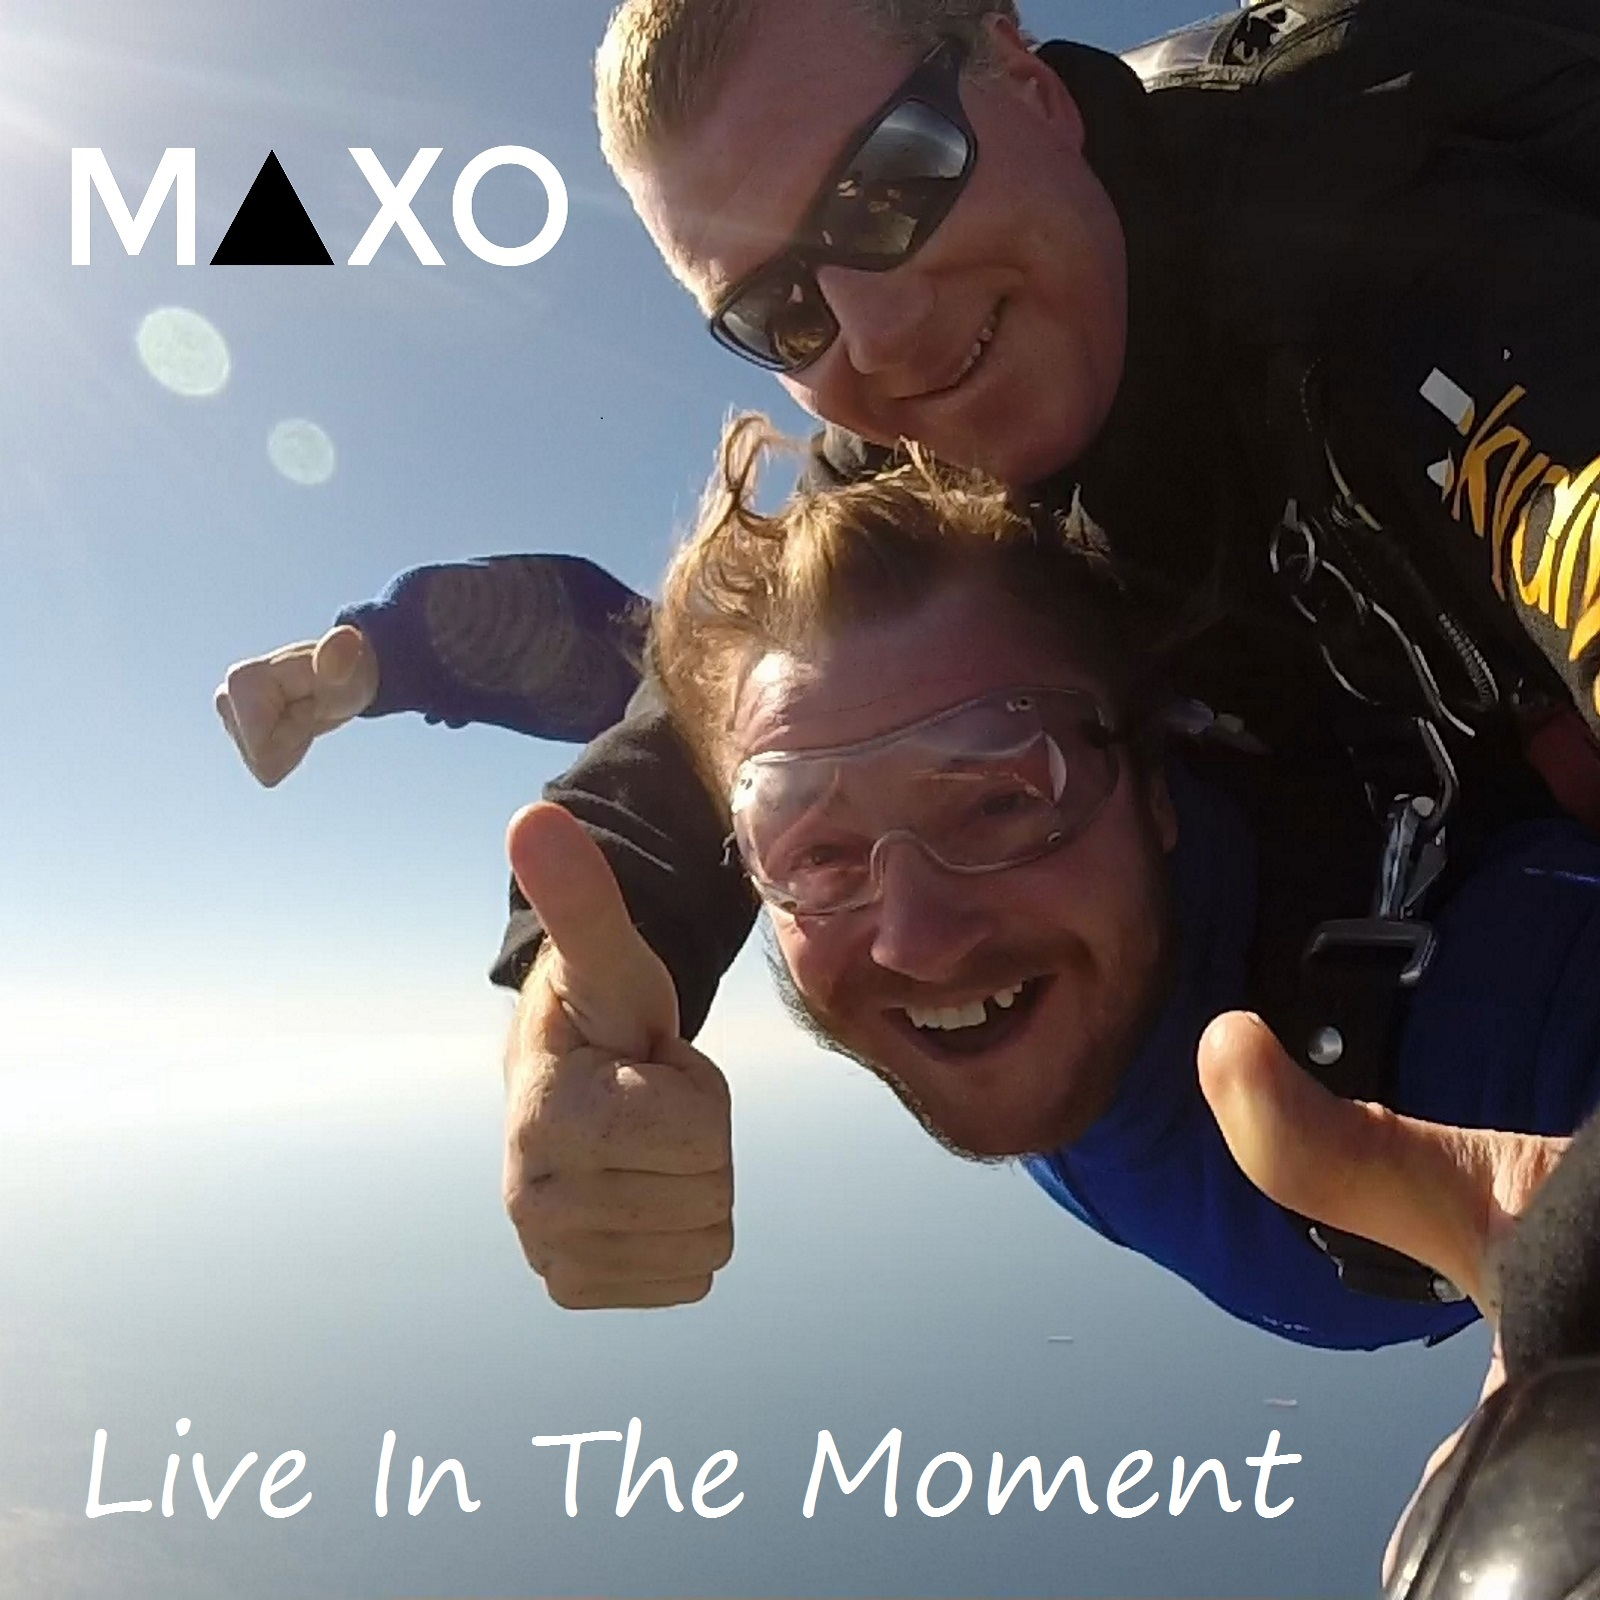 Live In The Moment Cover 1 with text.jpg